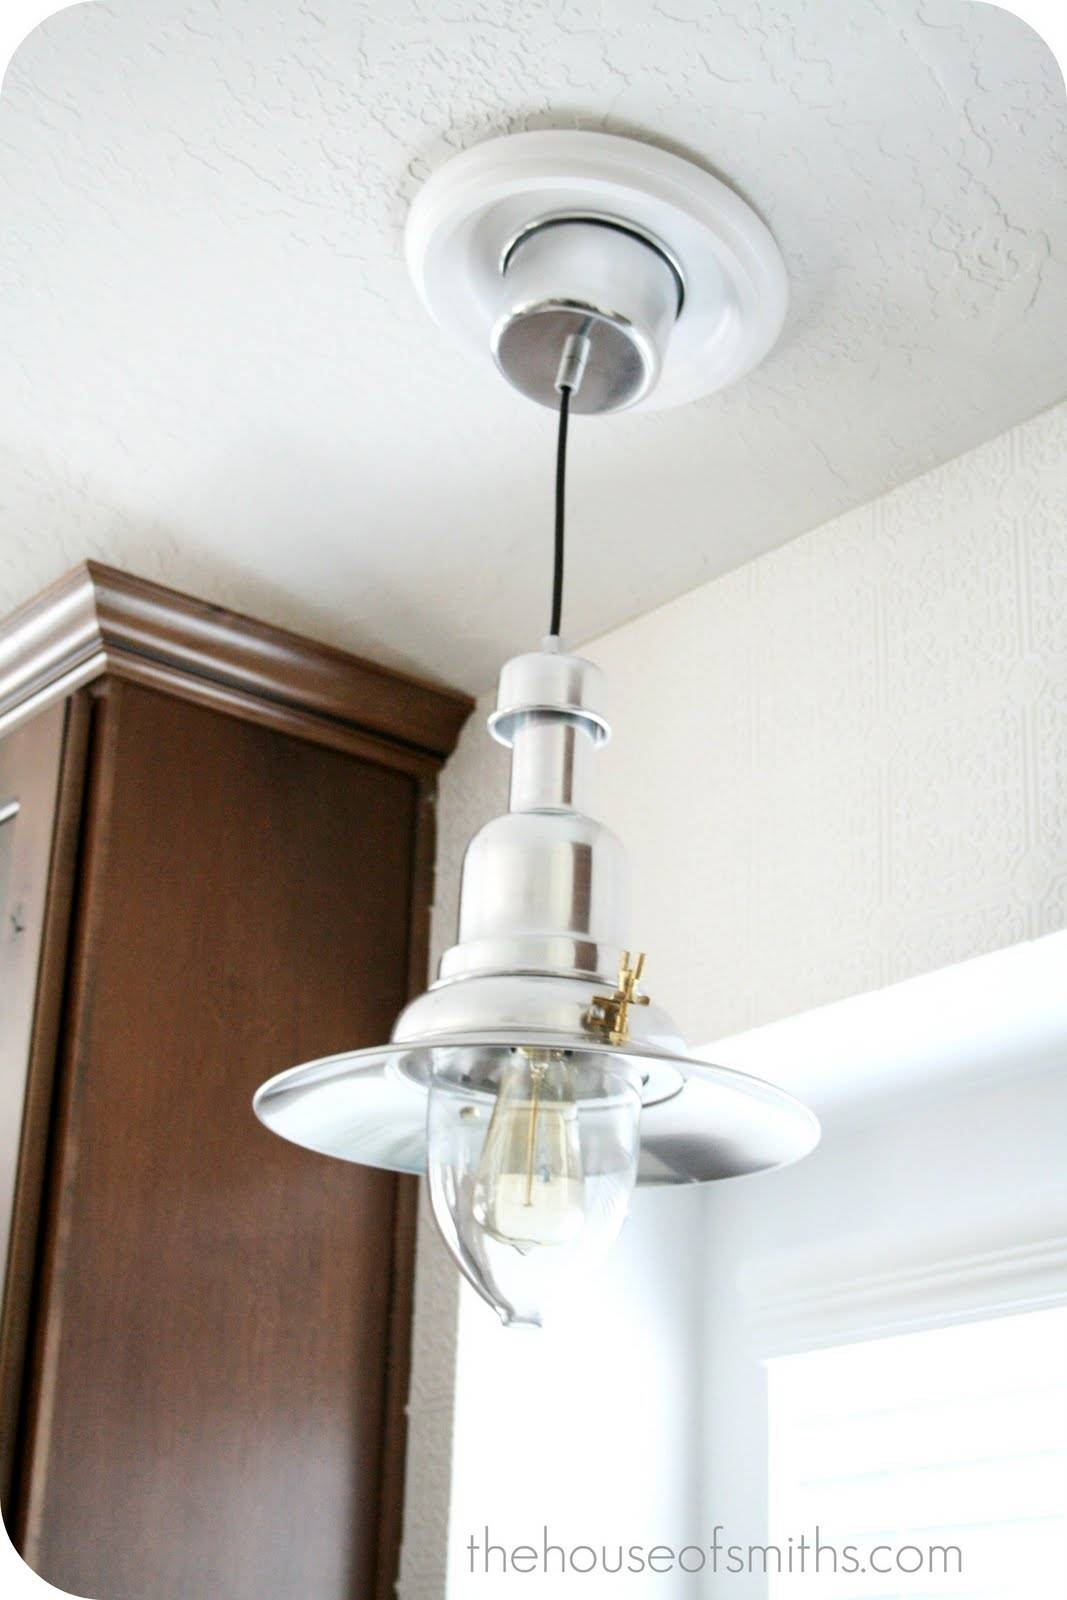 New Kitchen Lighting - Converting A Can Light With A Recessed for Ikea Recessed Lighting (Image 11 of 15)